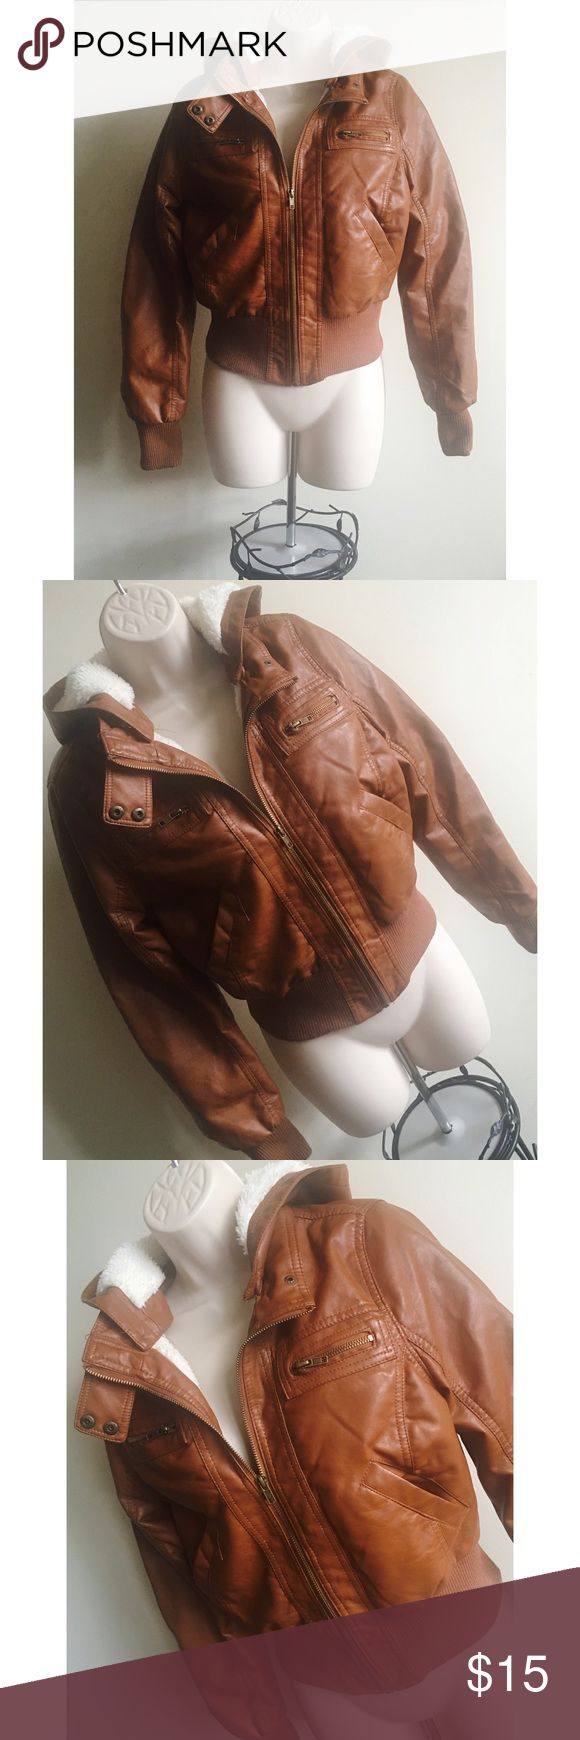 Faux Leather Jacket Brown Faux Leather Jacket with Detachable Hood in very good condition Any Questions Please Ask before Purchase No Paypal || No Trades || Posh Rules Only  Shipping:  Bundle and Save on Shipping / 20% off 3 or More Items Items are shipped within 24-48 hours of payment (Mon-Fri.)  Please Check Out my other listings for the best in brand new and gently used clothing, shoes and accessories. Happy Poshing!!! Ambiance Apparel Jackets & Coats